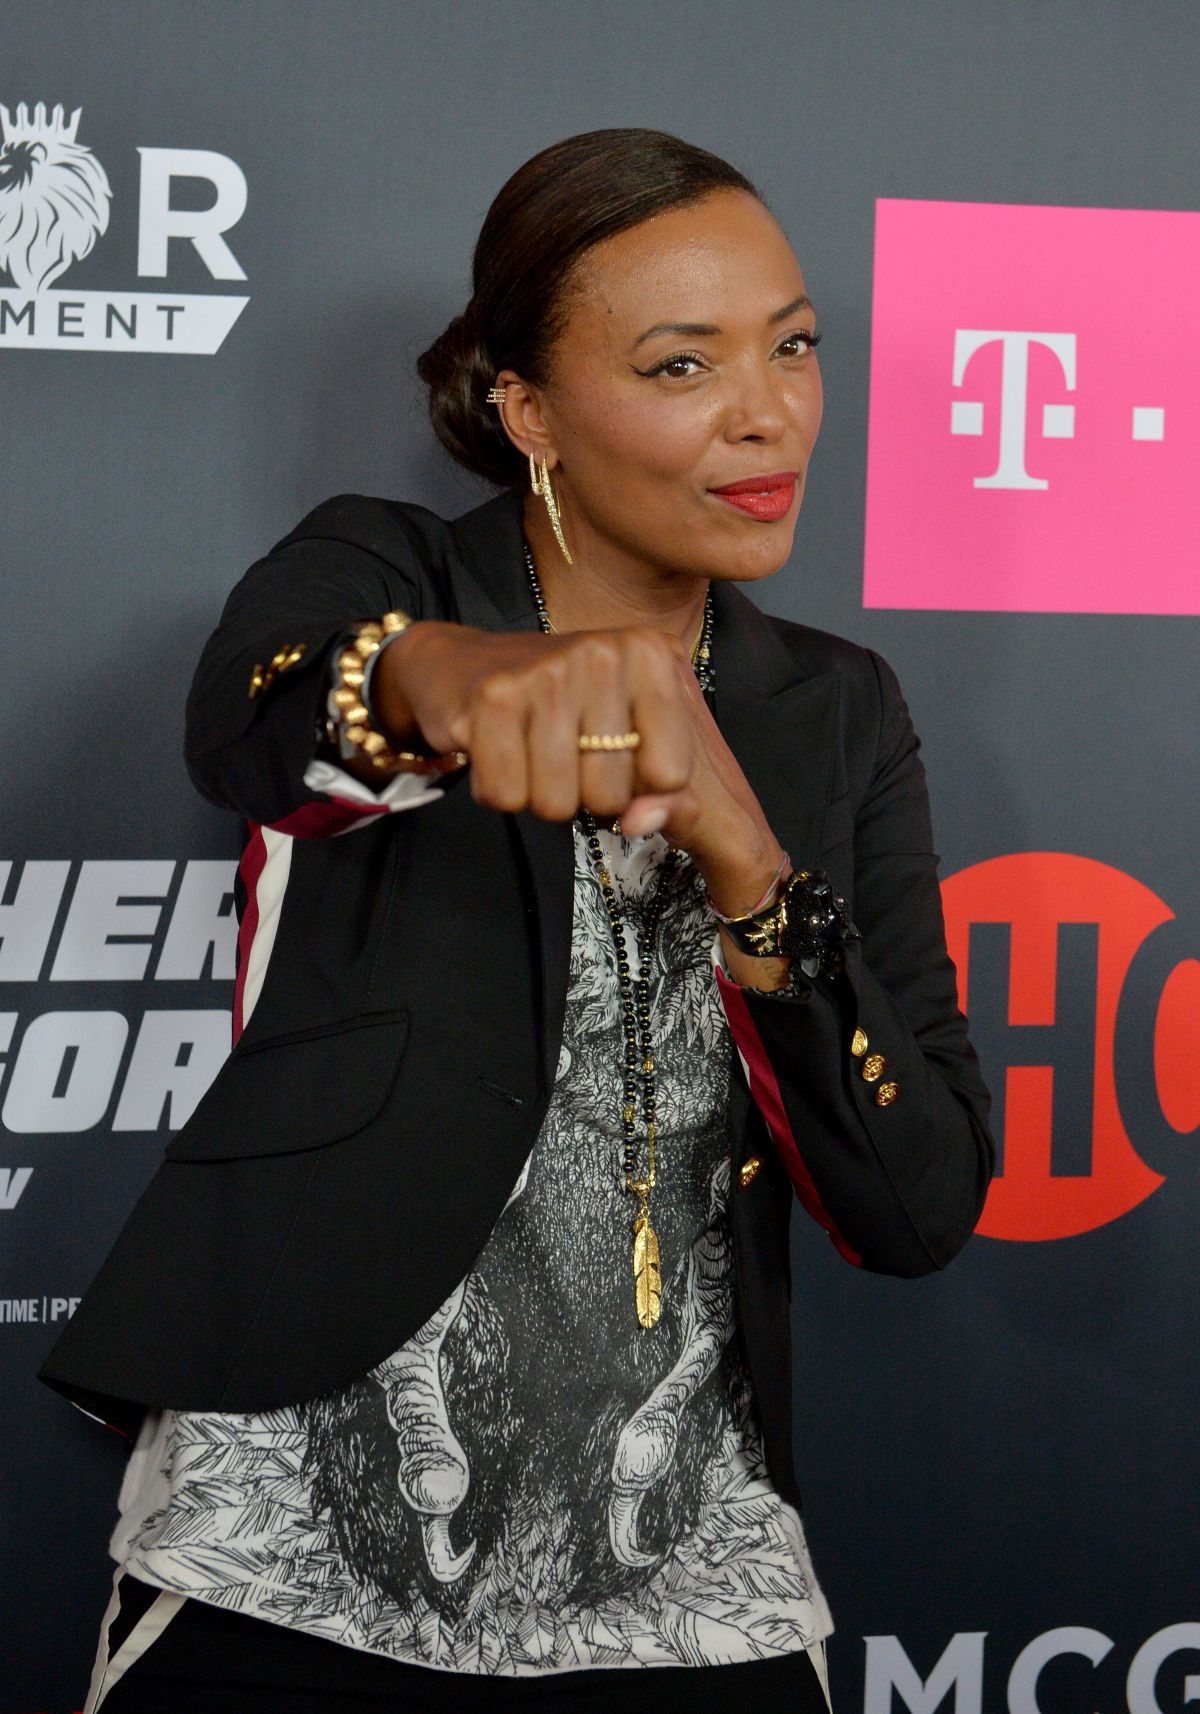 AISHA TYLER at Mayweather vs McGregor Pre-fight VIP Party in Las Vegas 08/26/2017